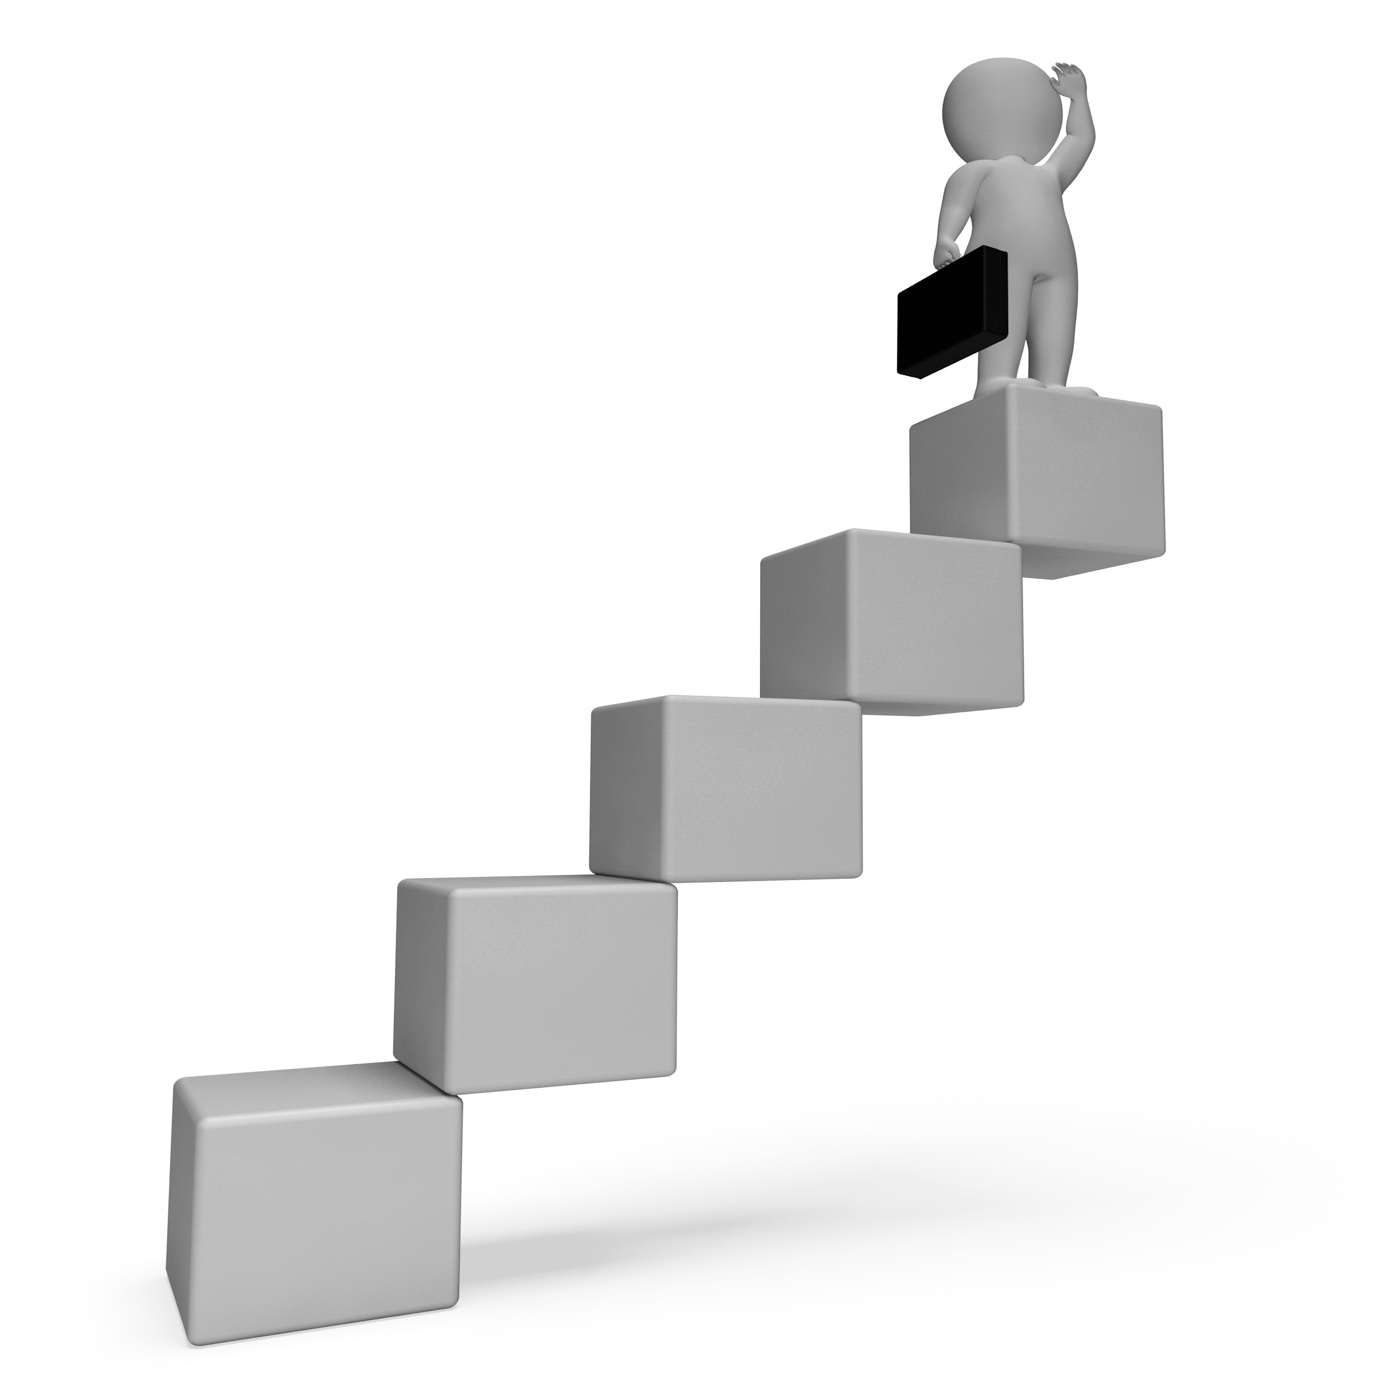 Stairs character indicates business person and achieve 3d rendering photo